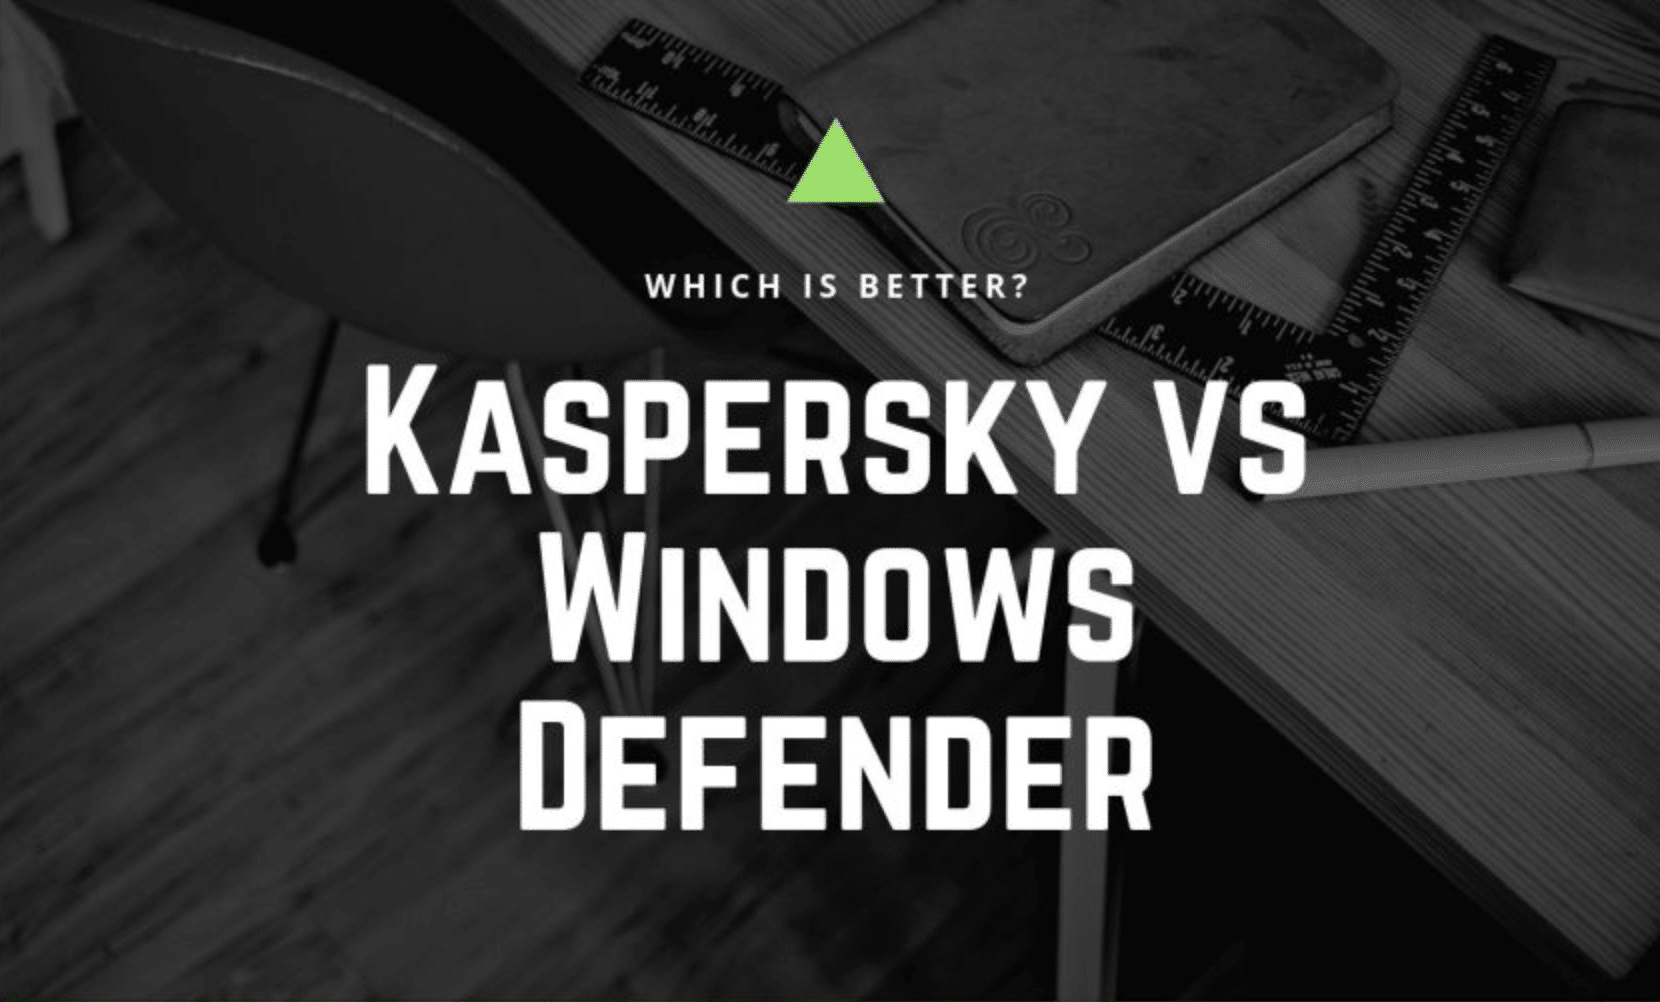 kaspersky vs windows defender